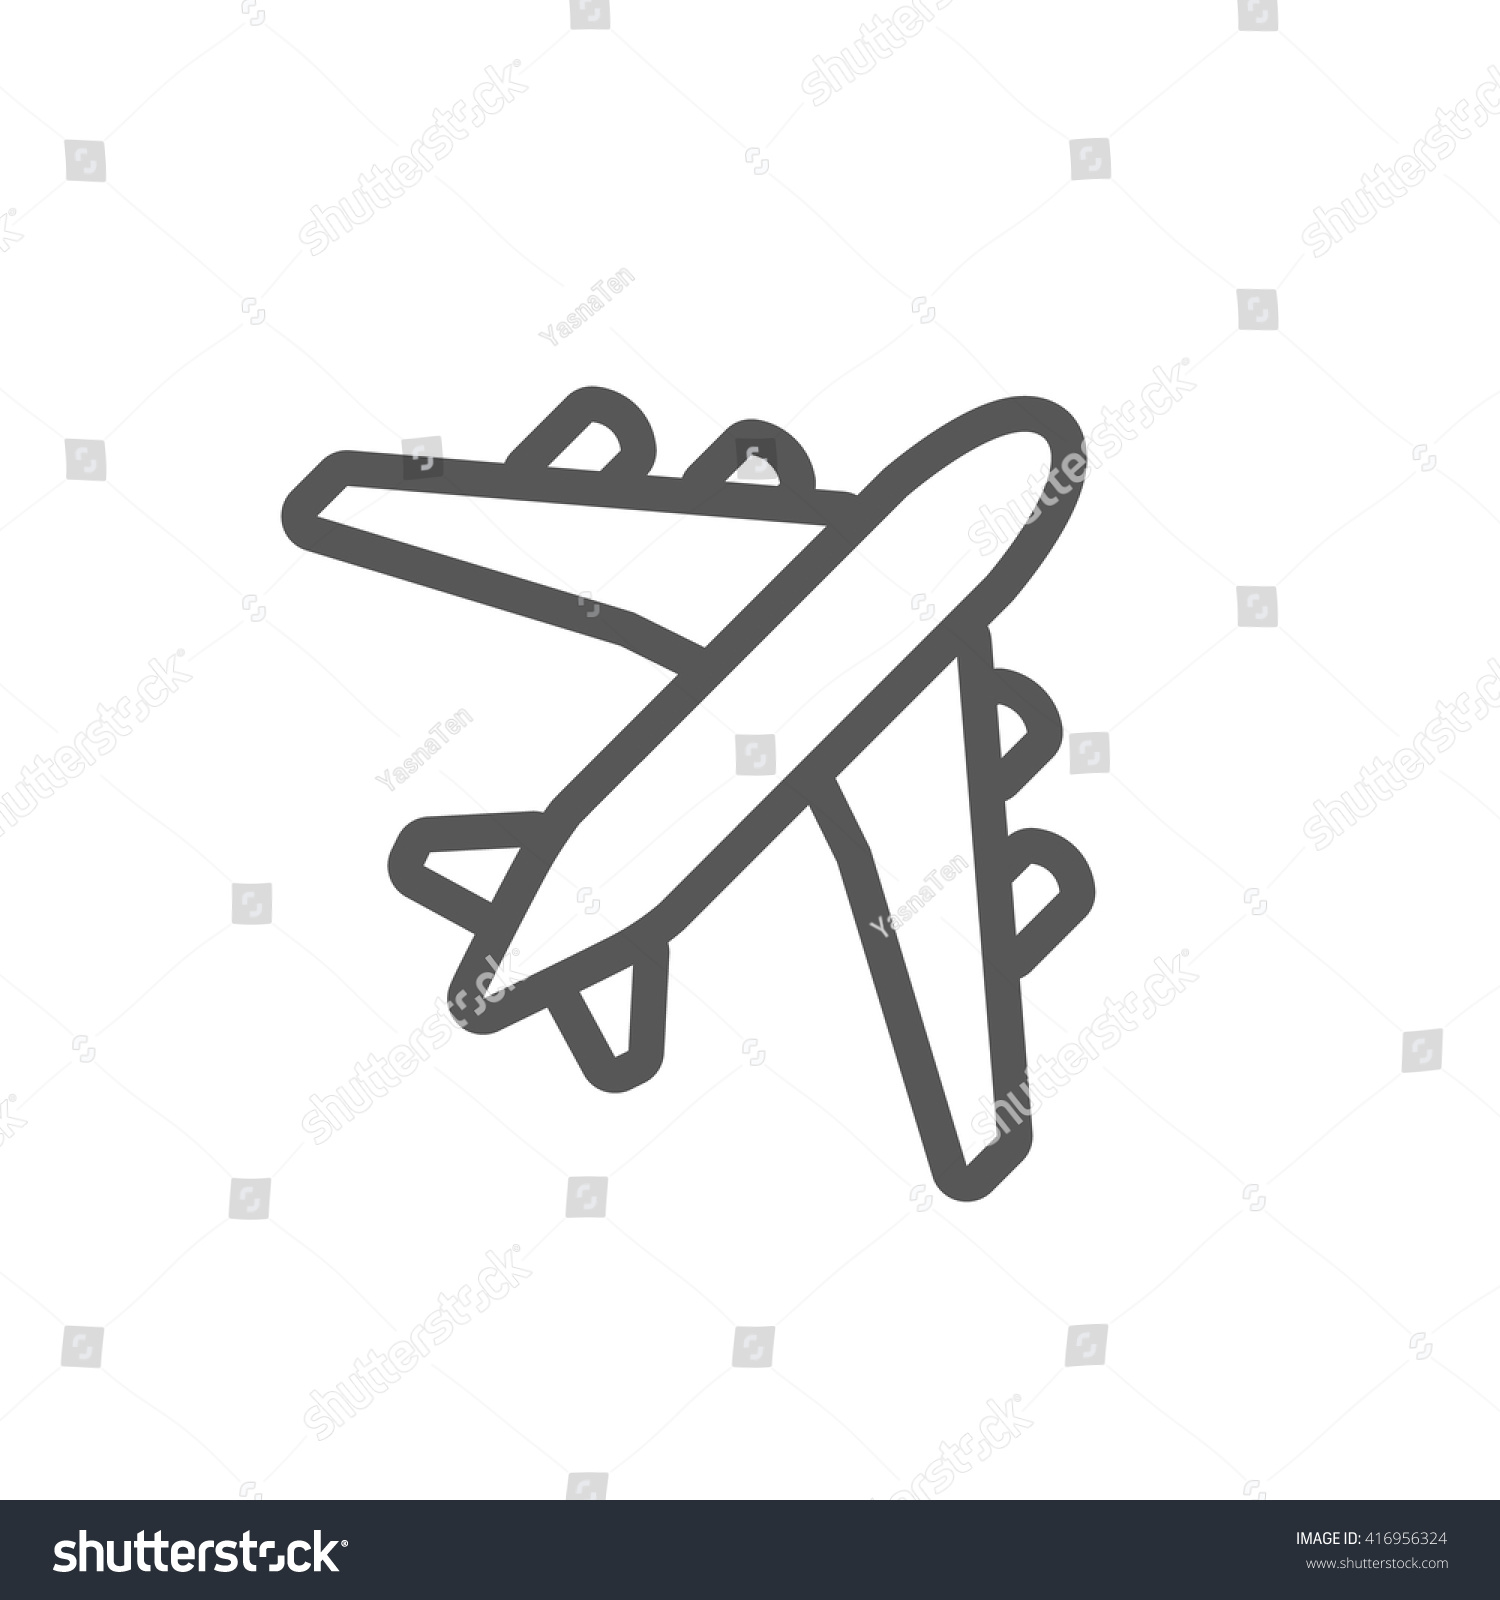 black plane outline simple airplane line icon design